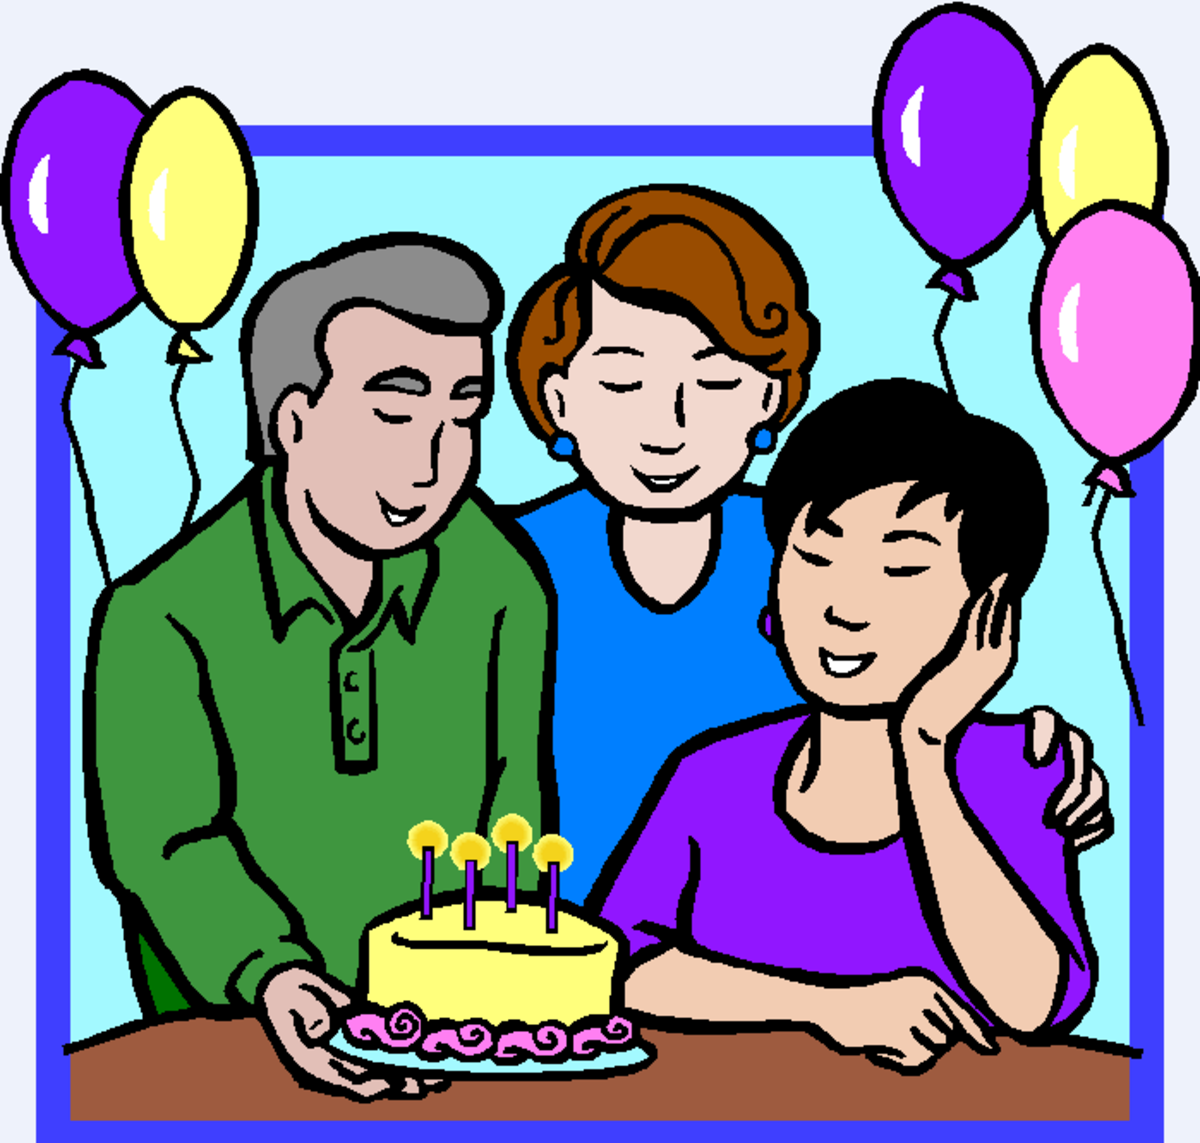 Man and Two Women at Birthday Party